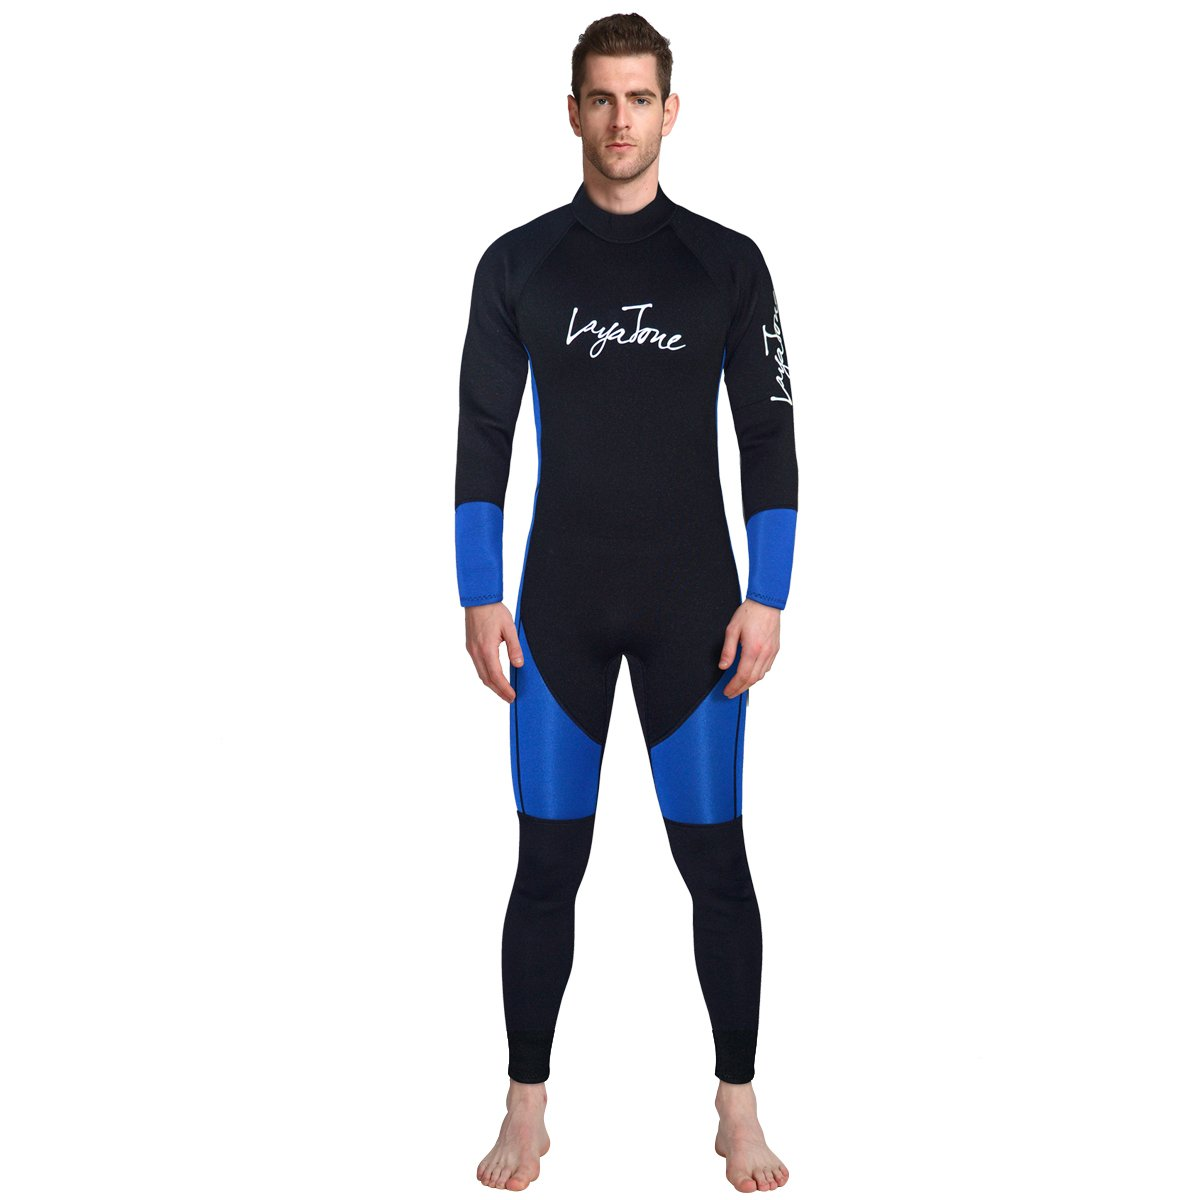 Wetsuit Men Diving Suit 3mm Neoprene Suit Long Sleeves Surfing Suit UV Protect Snorkeling Suit One Piece Kayaking Suit for Scuba Watersport Boating Fitness by ALEEYA